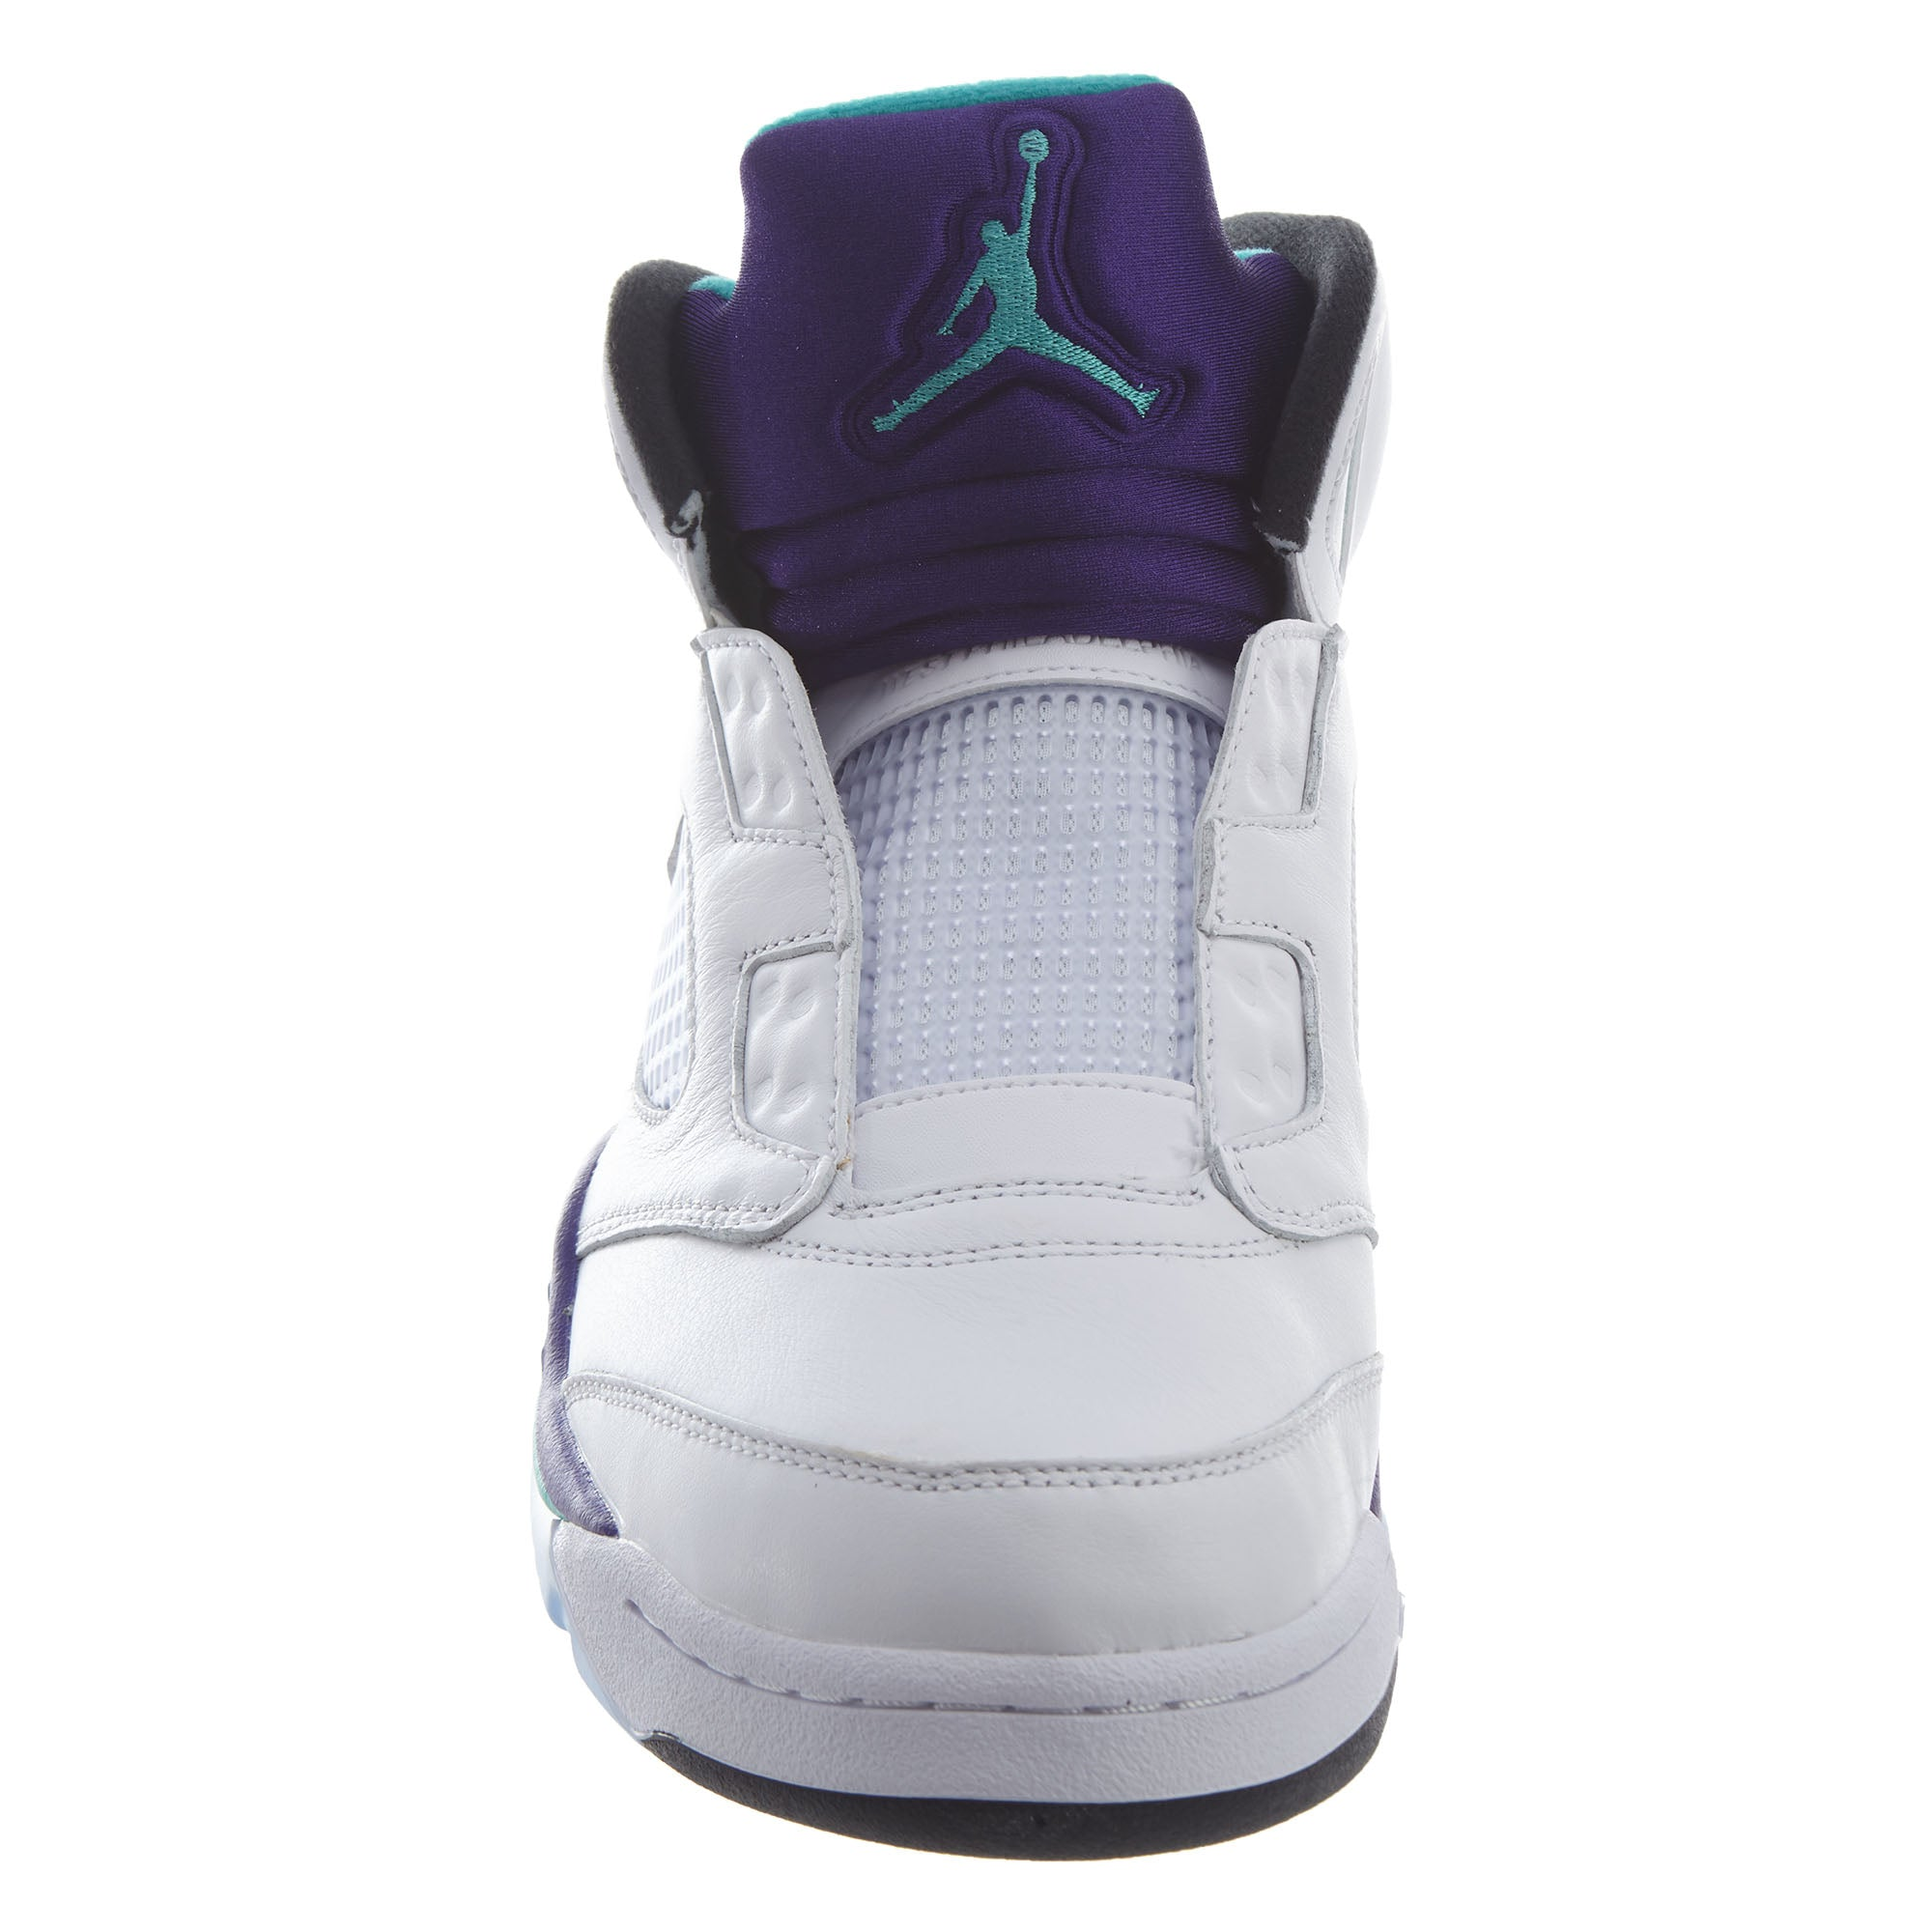 f0707a5a75cd Jordan 5 Retro Grape Fresh Prince Mens Style   Av3919-135 · AIR JORDAN    Athletic Shoes   Sneakers